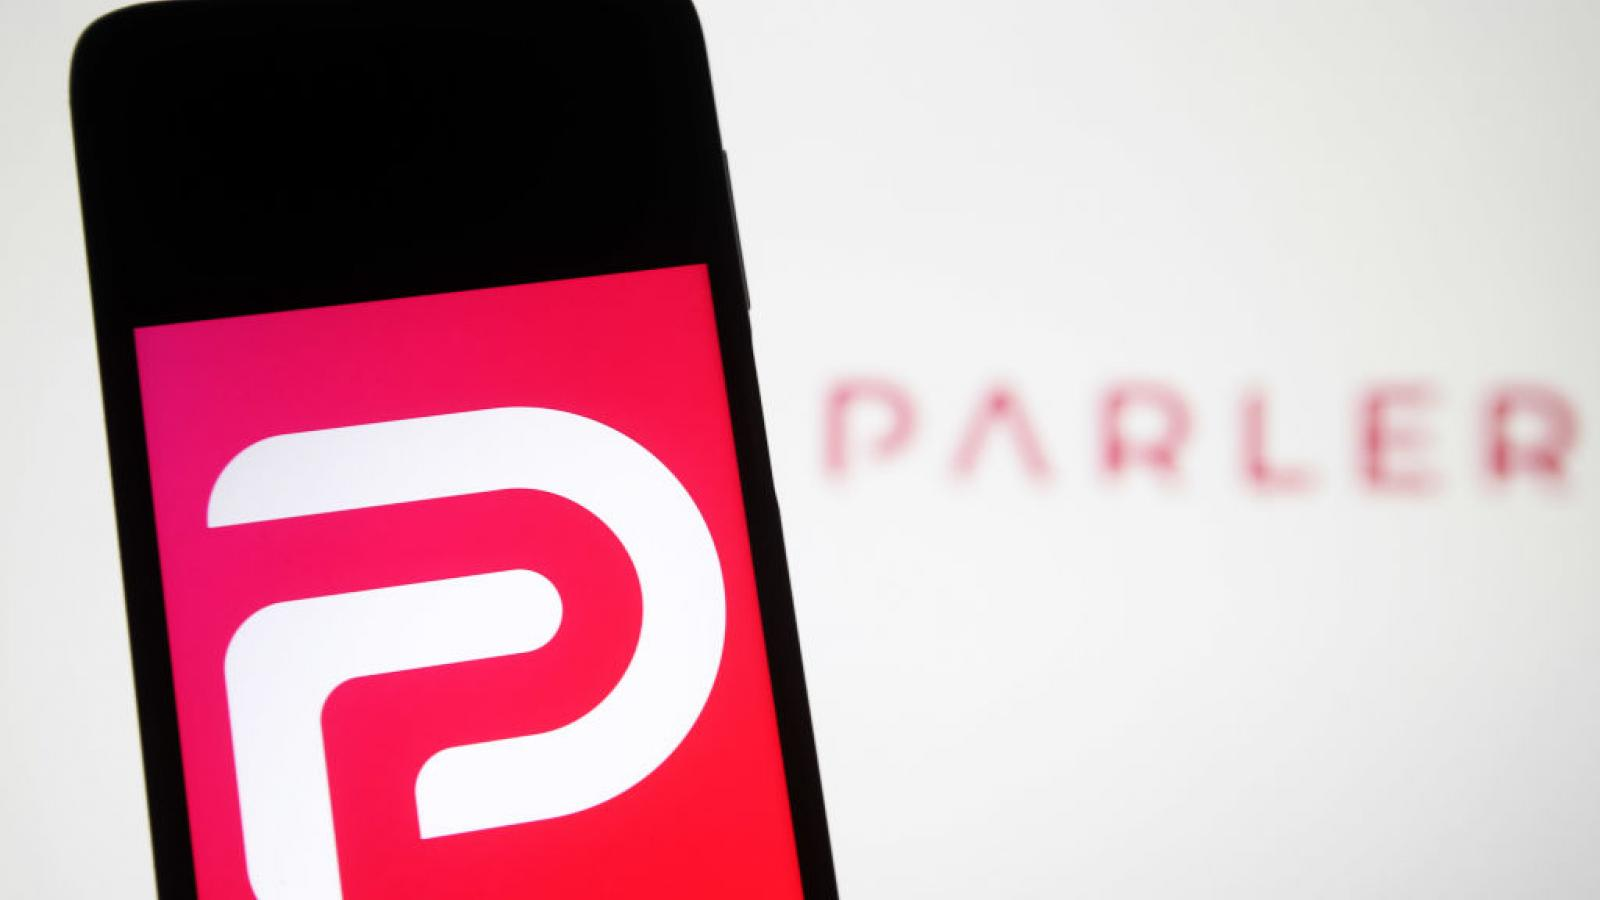 Parler logo displayed on phone in photo illustration